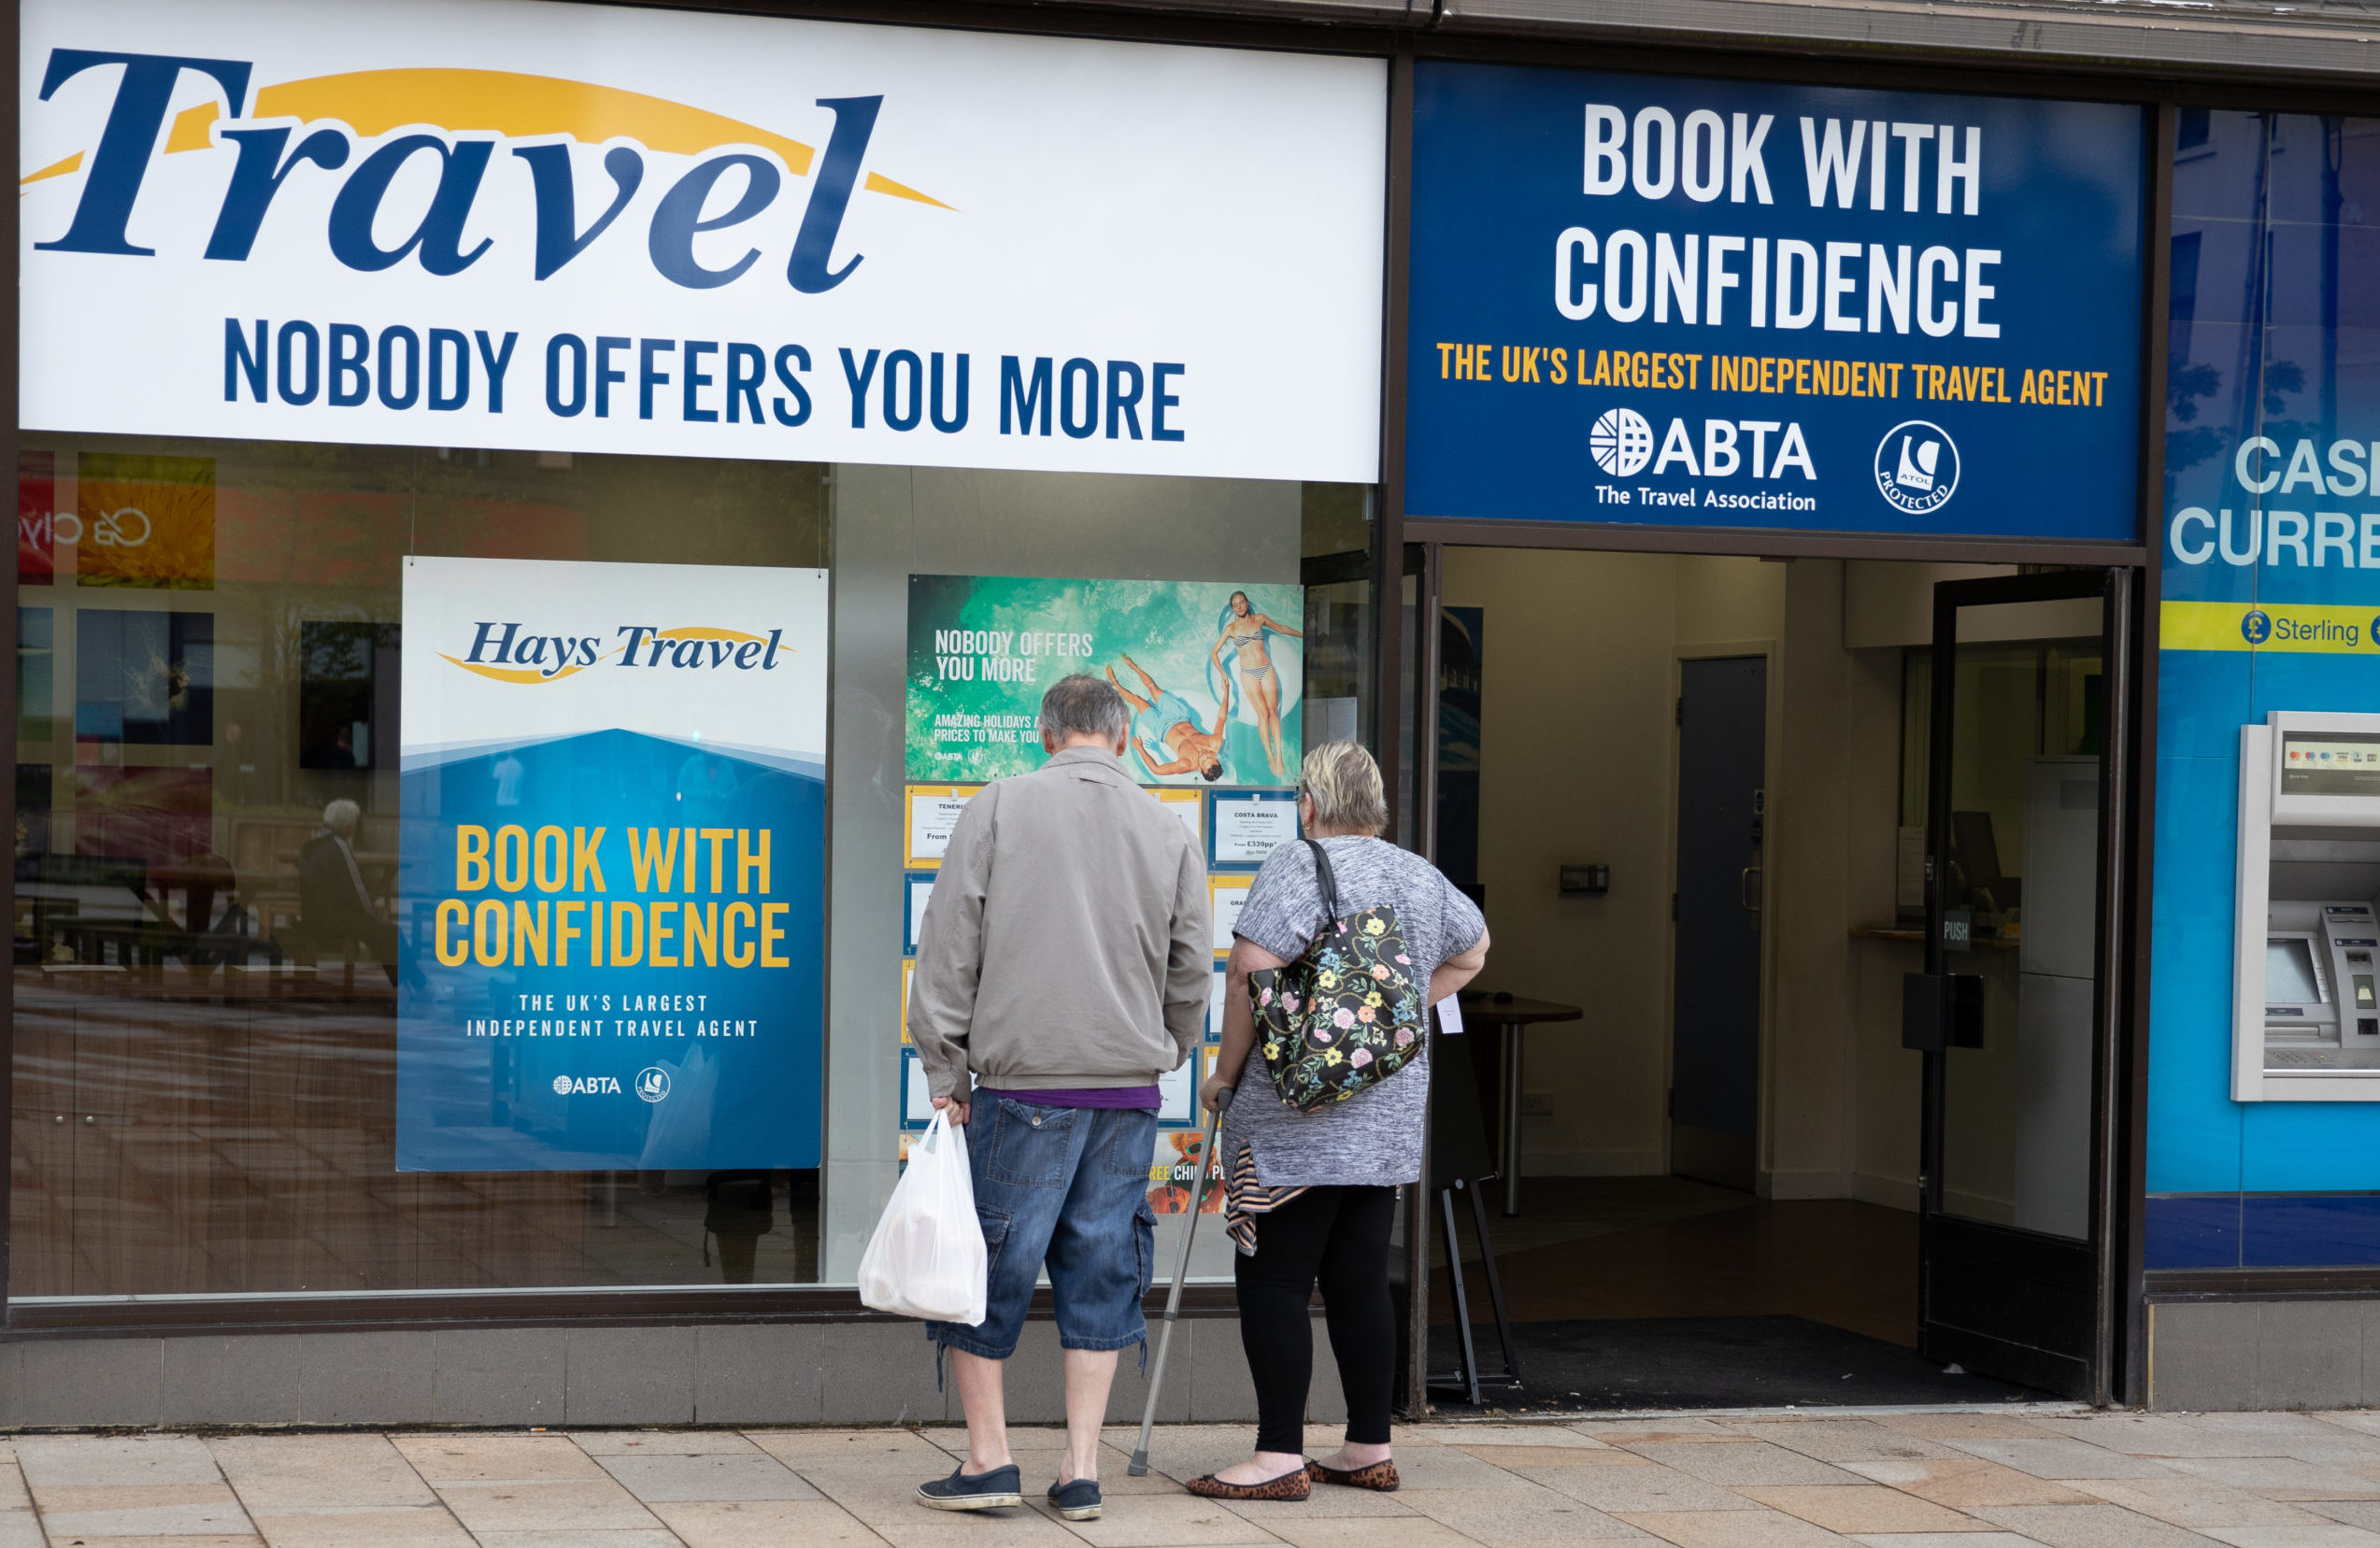 Hays Travel, High Street, Dundee.